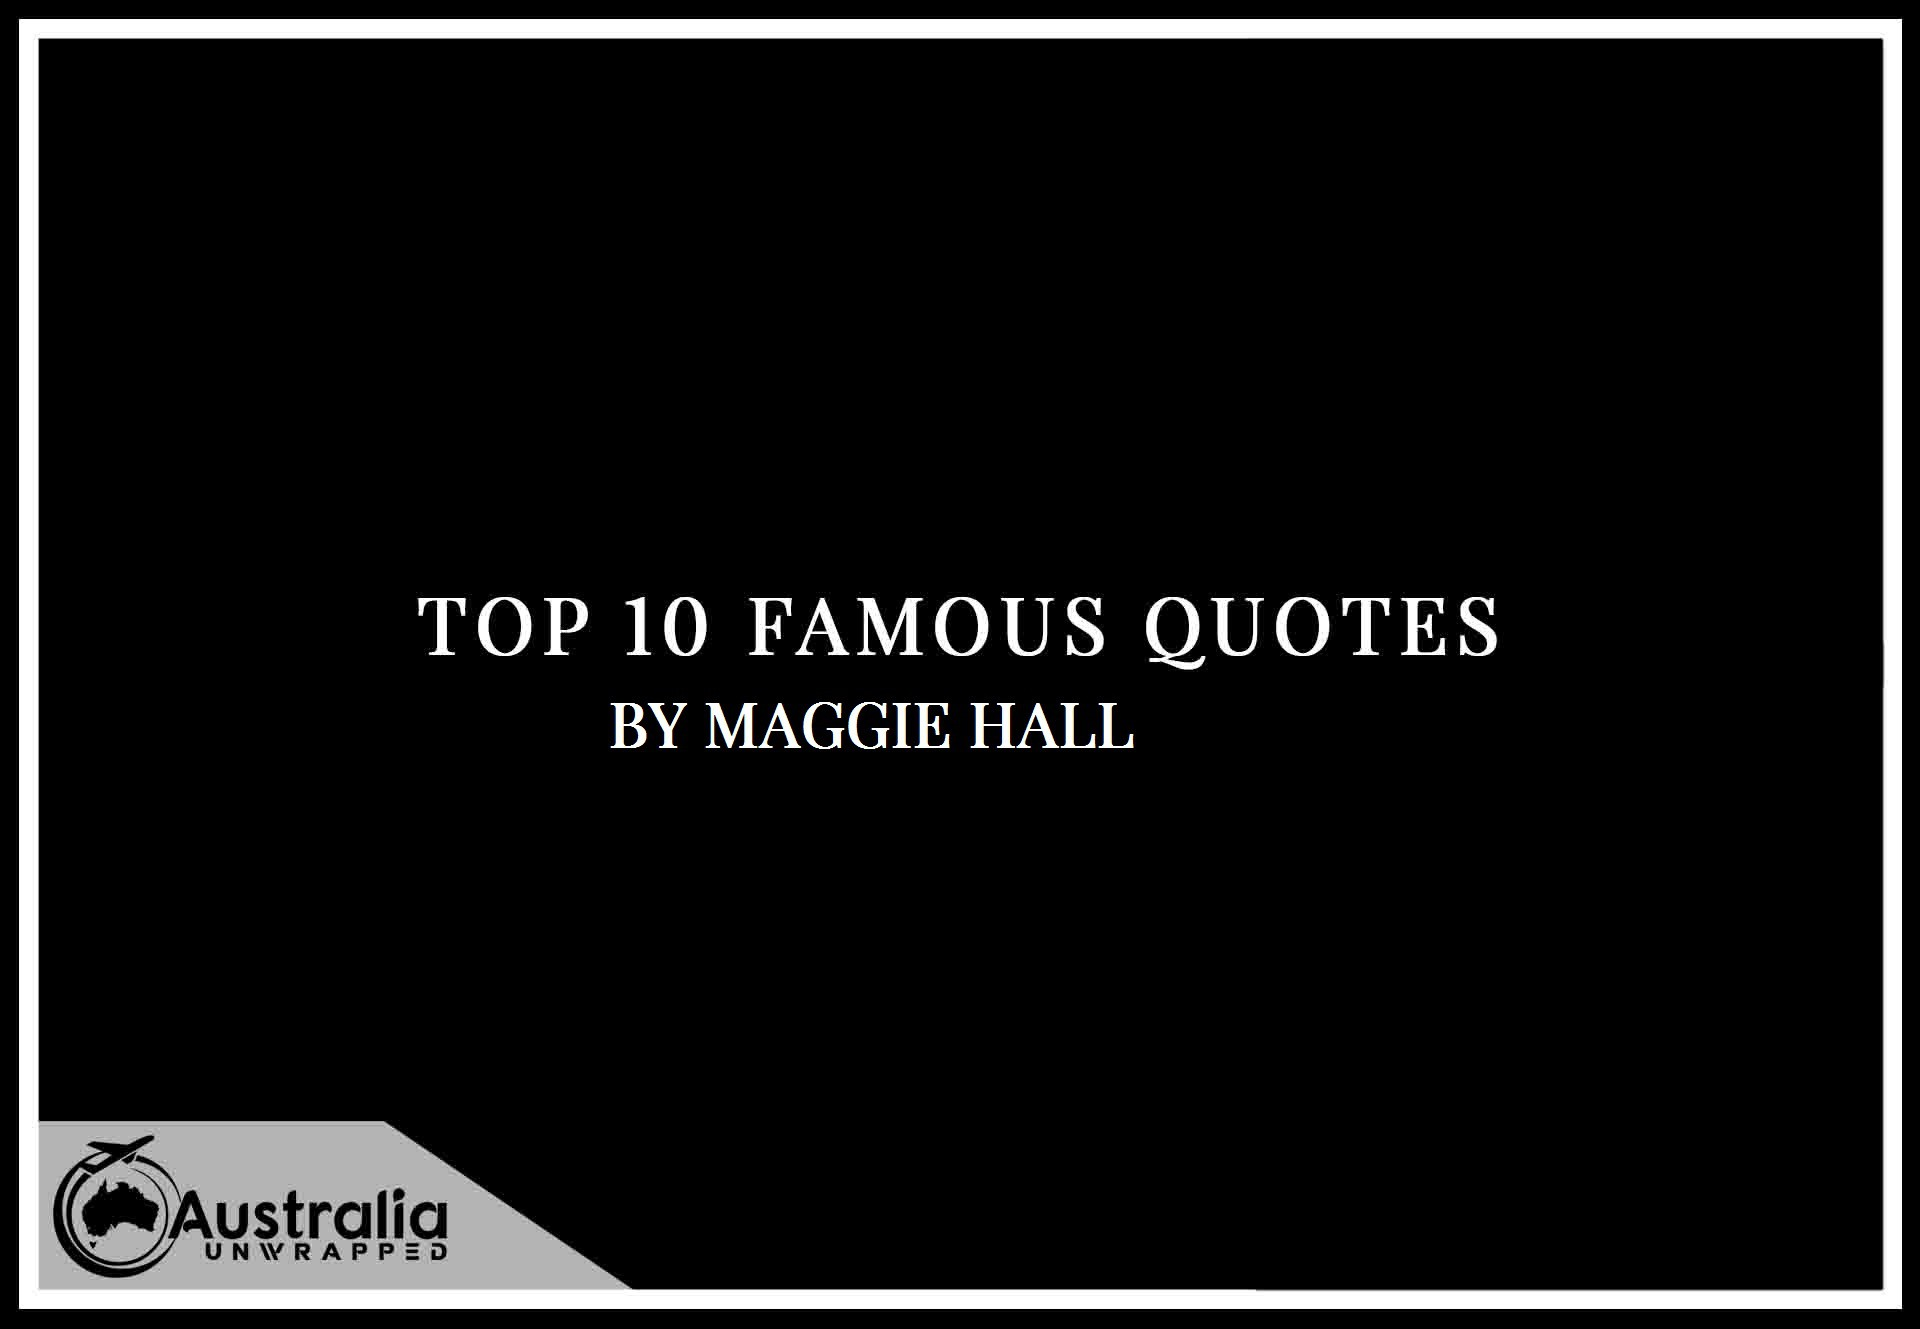 Maggie Hall's Top 10 Popular and Famous Quotes